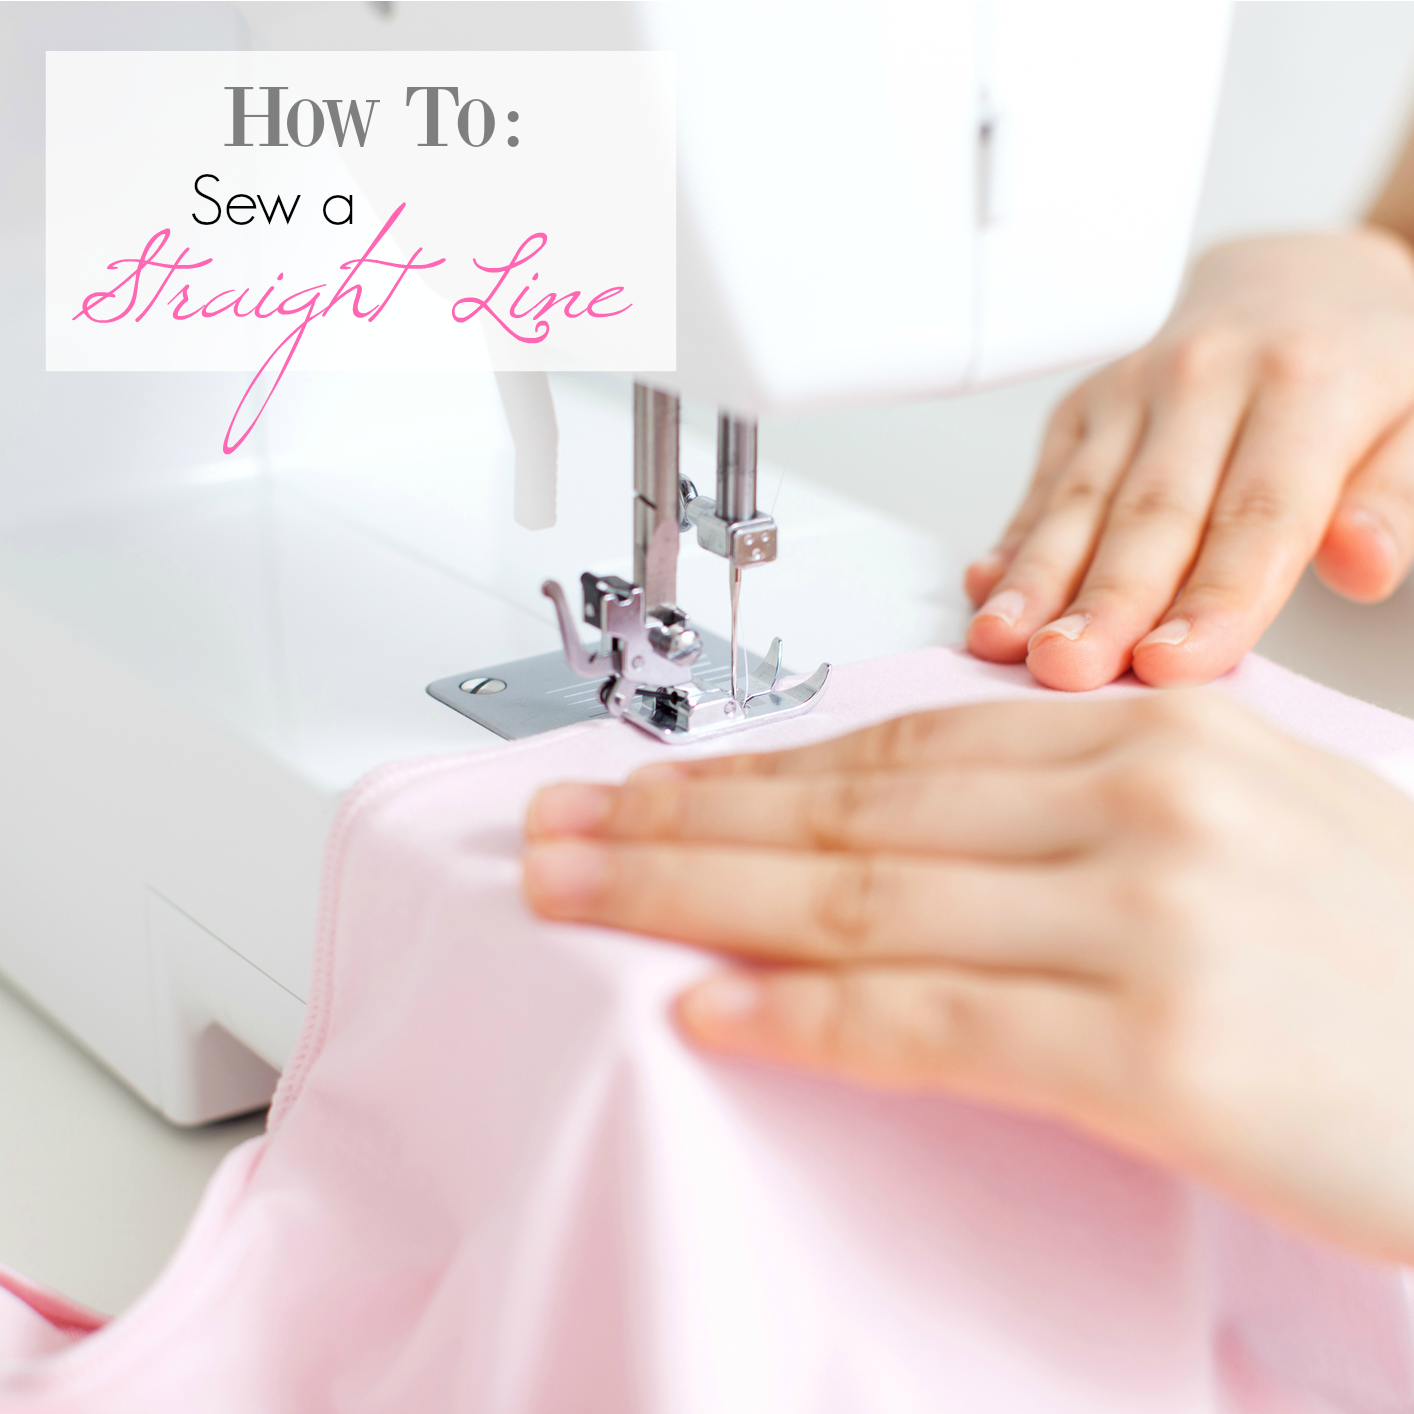 How to Sew a Straight Line with these easy, free learn to sew online sewing classes. #learntosew #sew